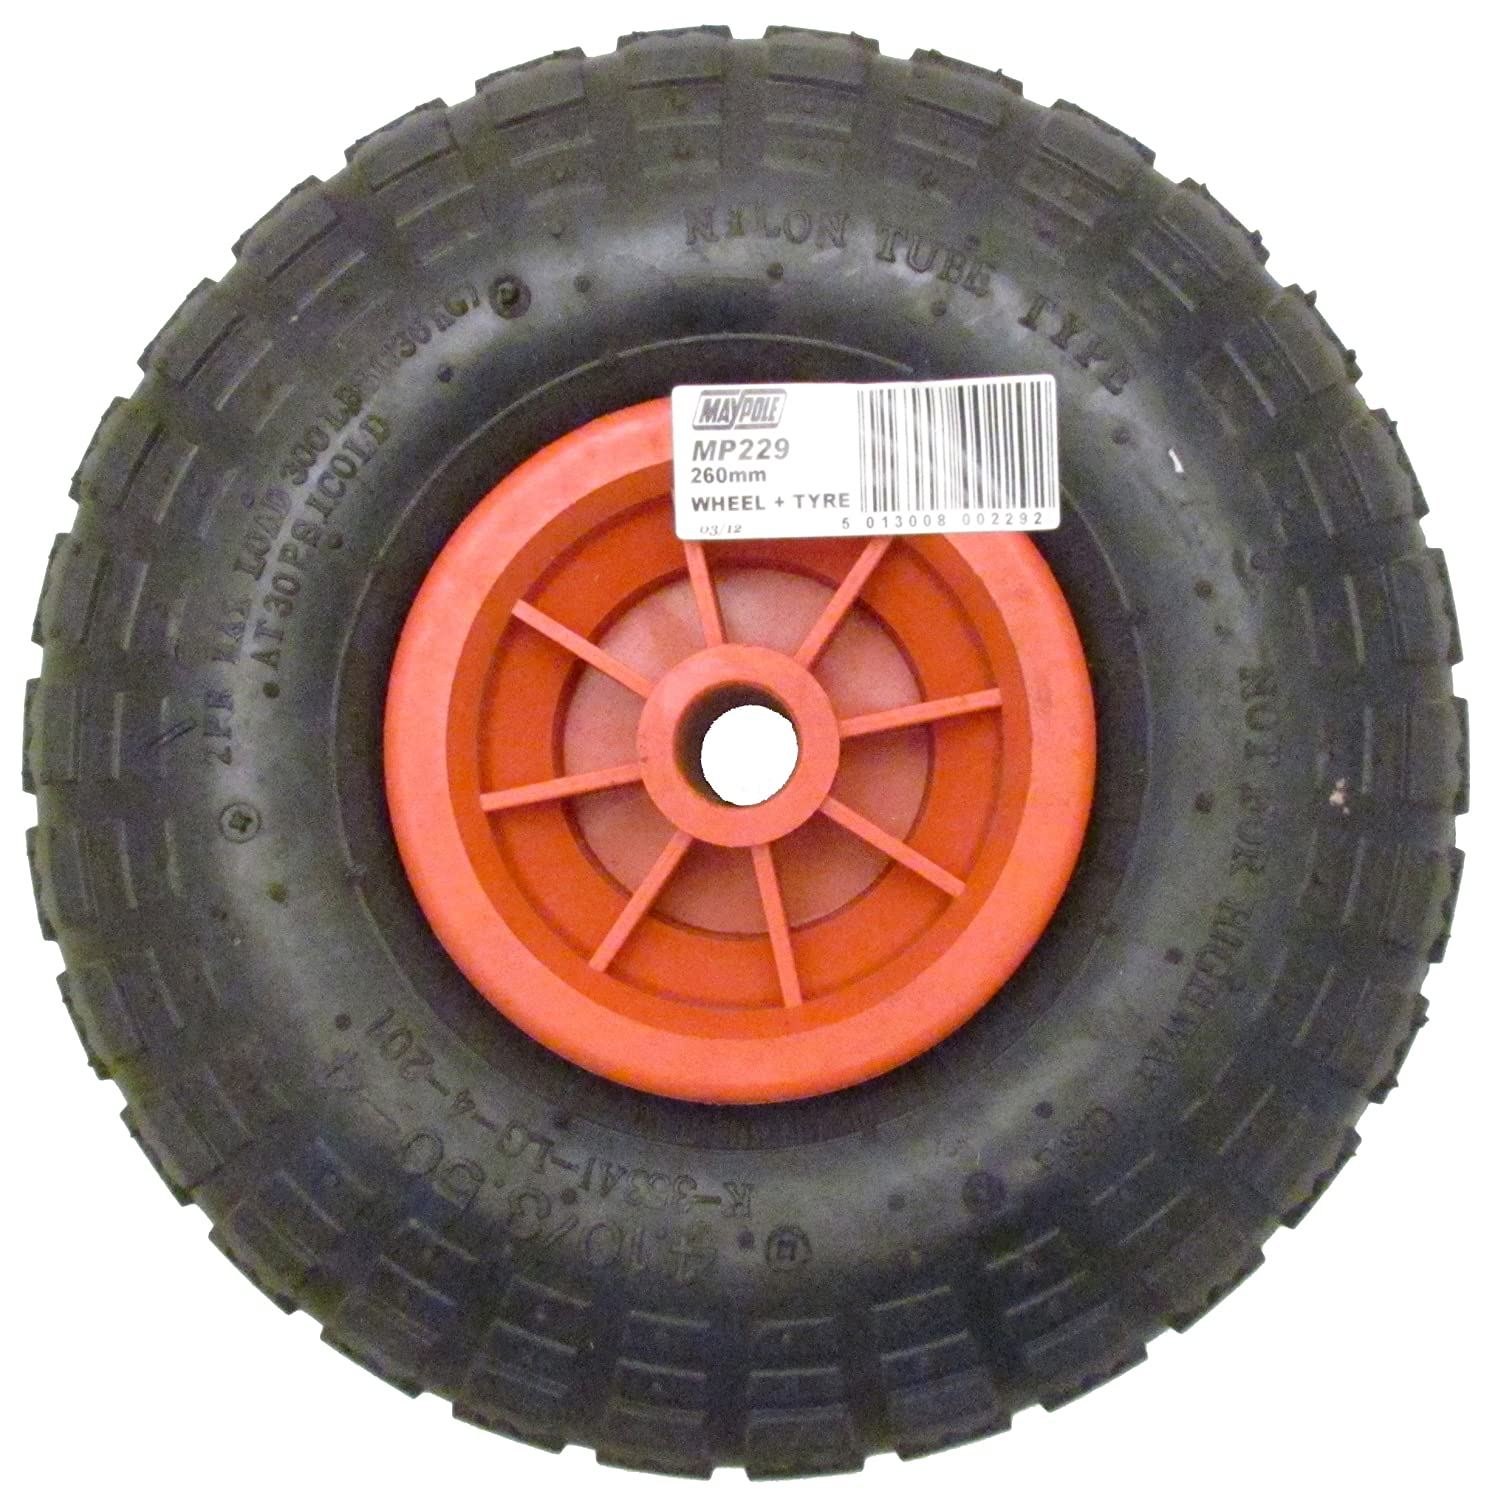 Amazon.co.uk: Car Tyres